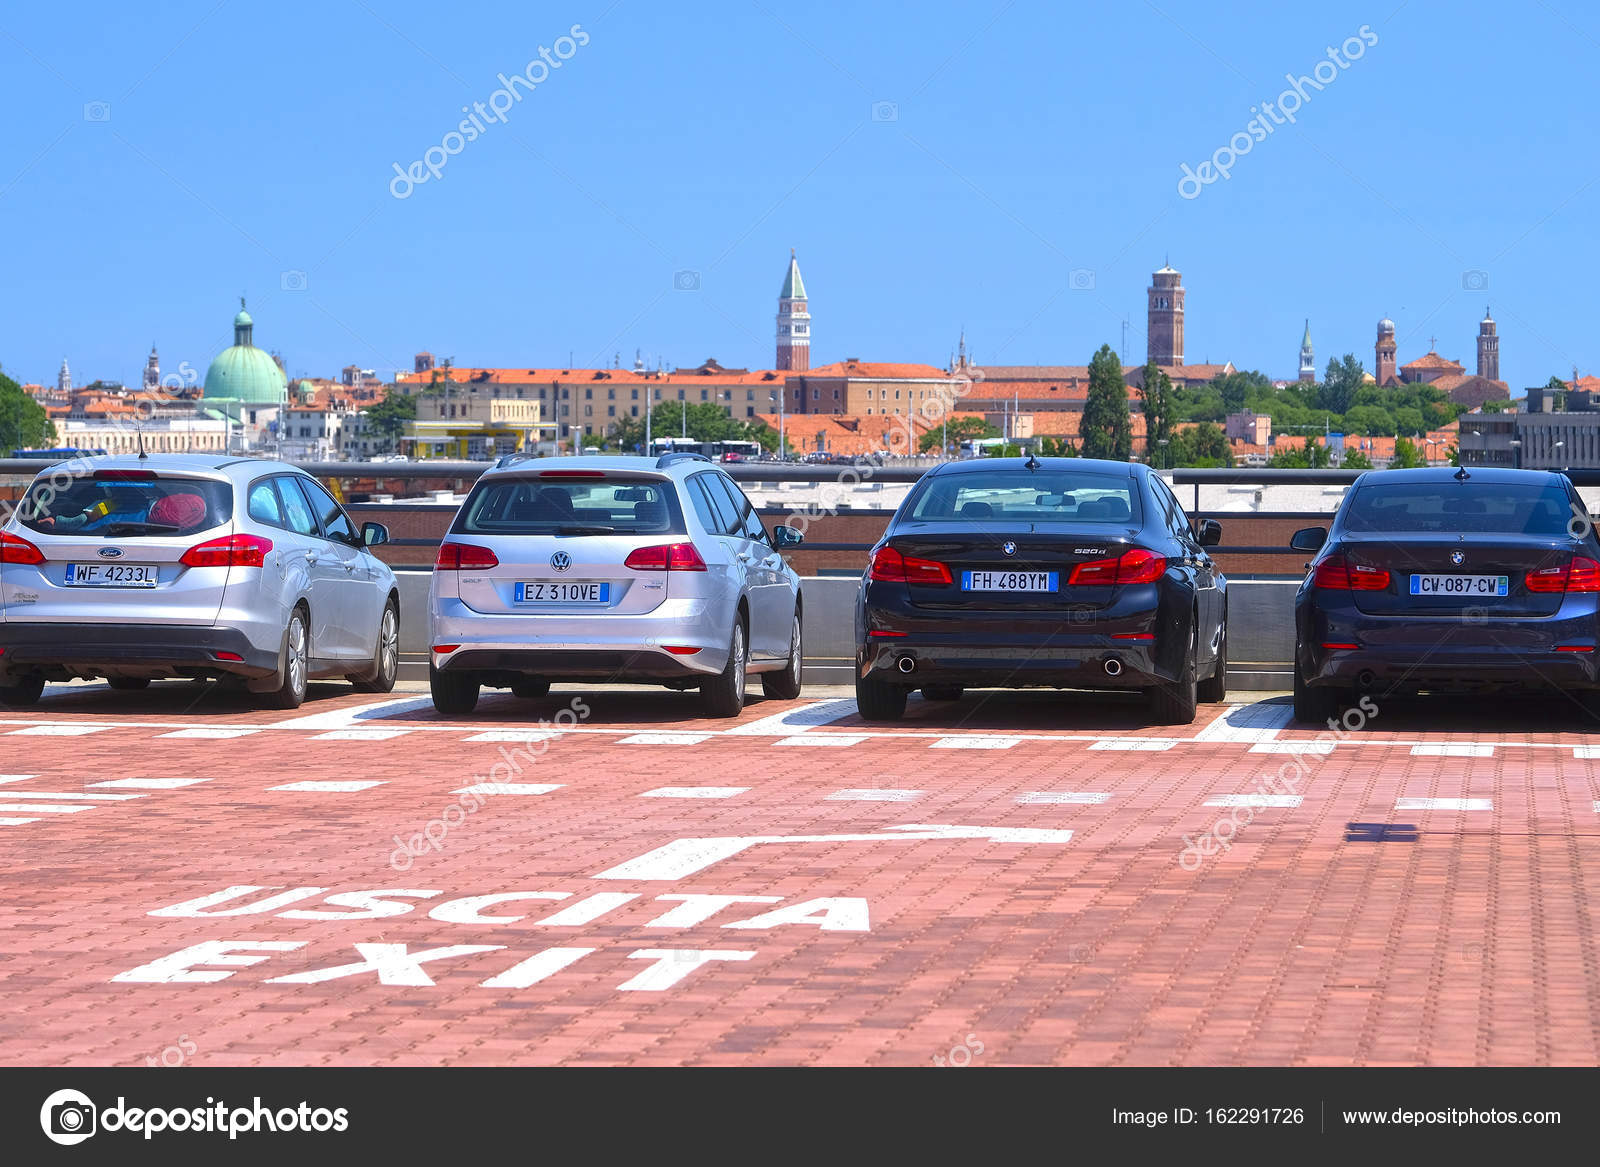 car on a parking in Venice – Stock Editorial Photo © uatp12 #162291726